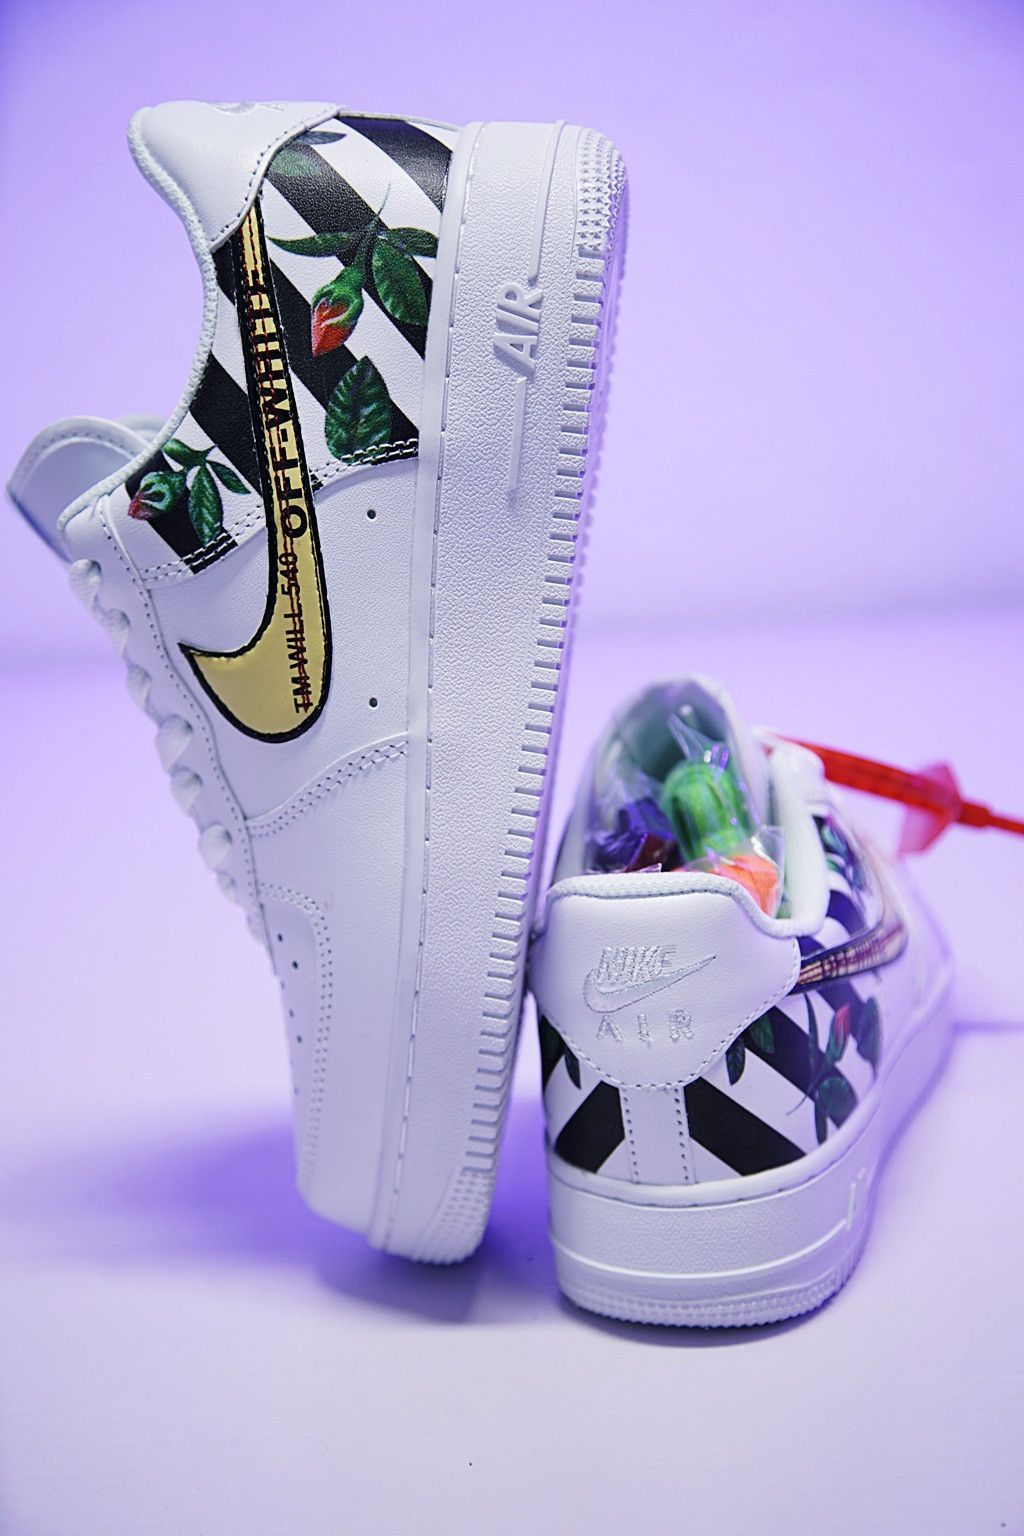 d1c0081b3b65e NIKE AIR FORCE 1 LOW OFF WHITE CUSTOM SNEAKER 008243280 ...